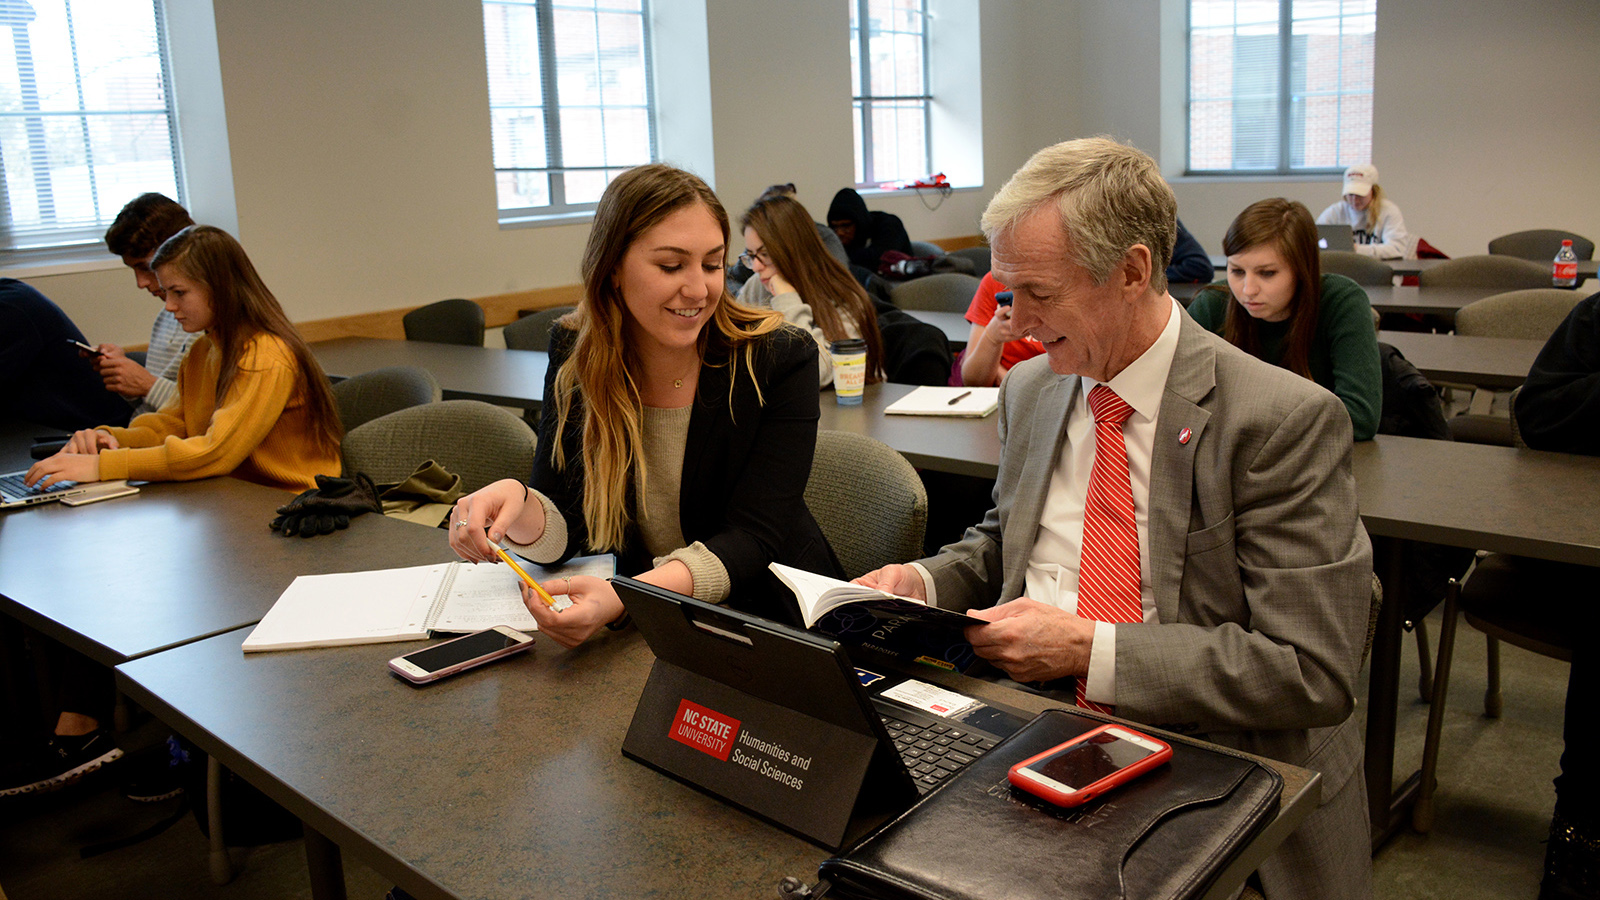 Dean Jeff Braden and student Taylor Hayden in class.